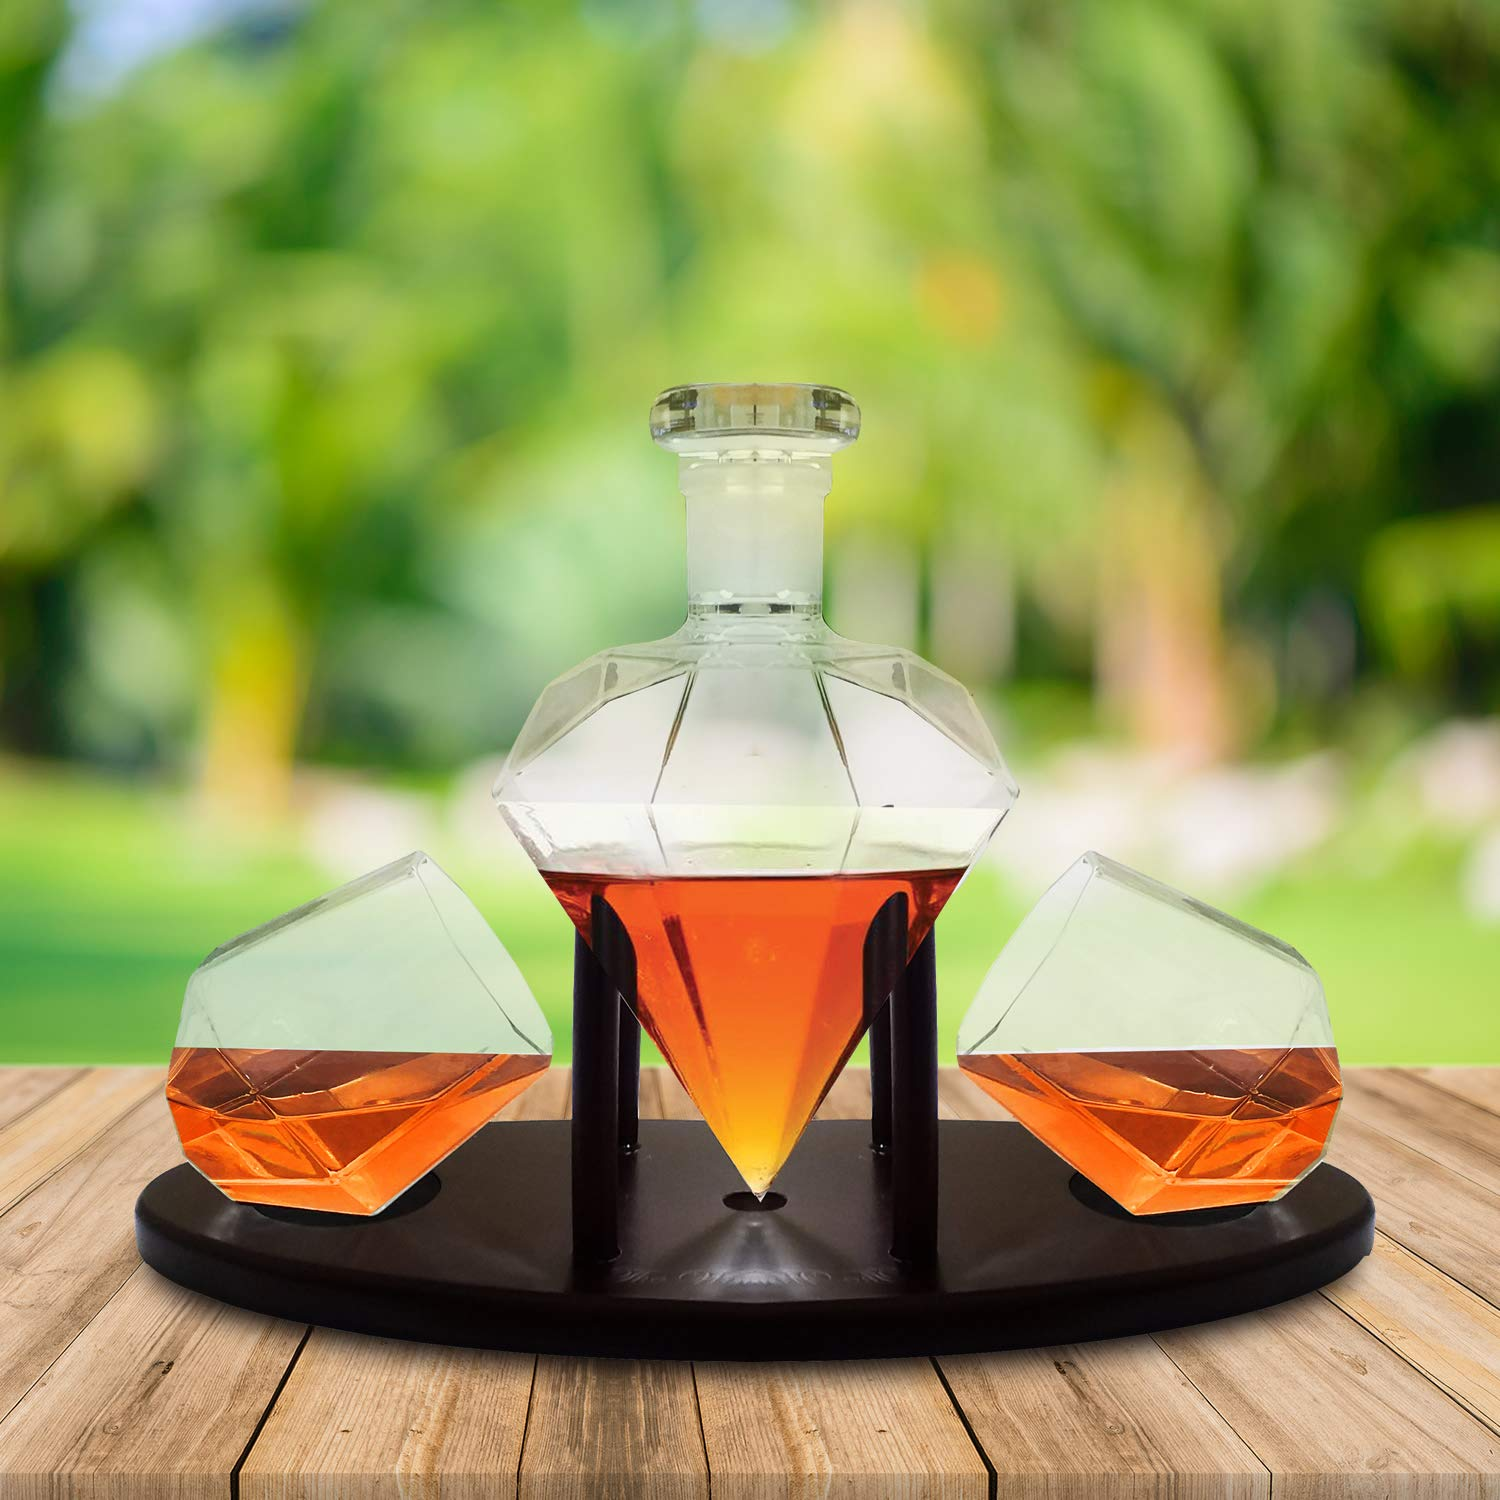 Whiskey Decanter Diamond shaped With 2 Diamond Glasses & Mahogany Wooden Holder - Elegant Handcrafted Crafted Glass Decanter For Liquor, Scotch, Rum, Bourbon, Vodka, Tequila - Great Gift Idea - 750ml by RUGLUSH (Image #6)